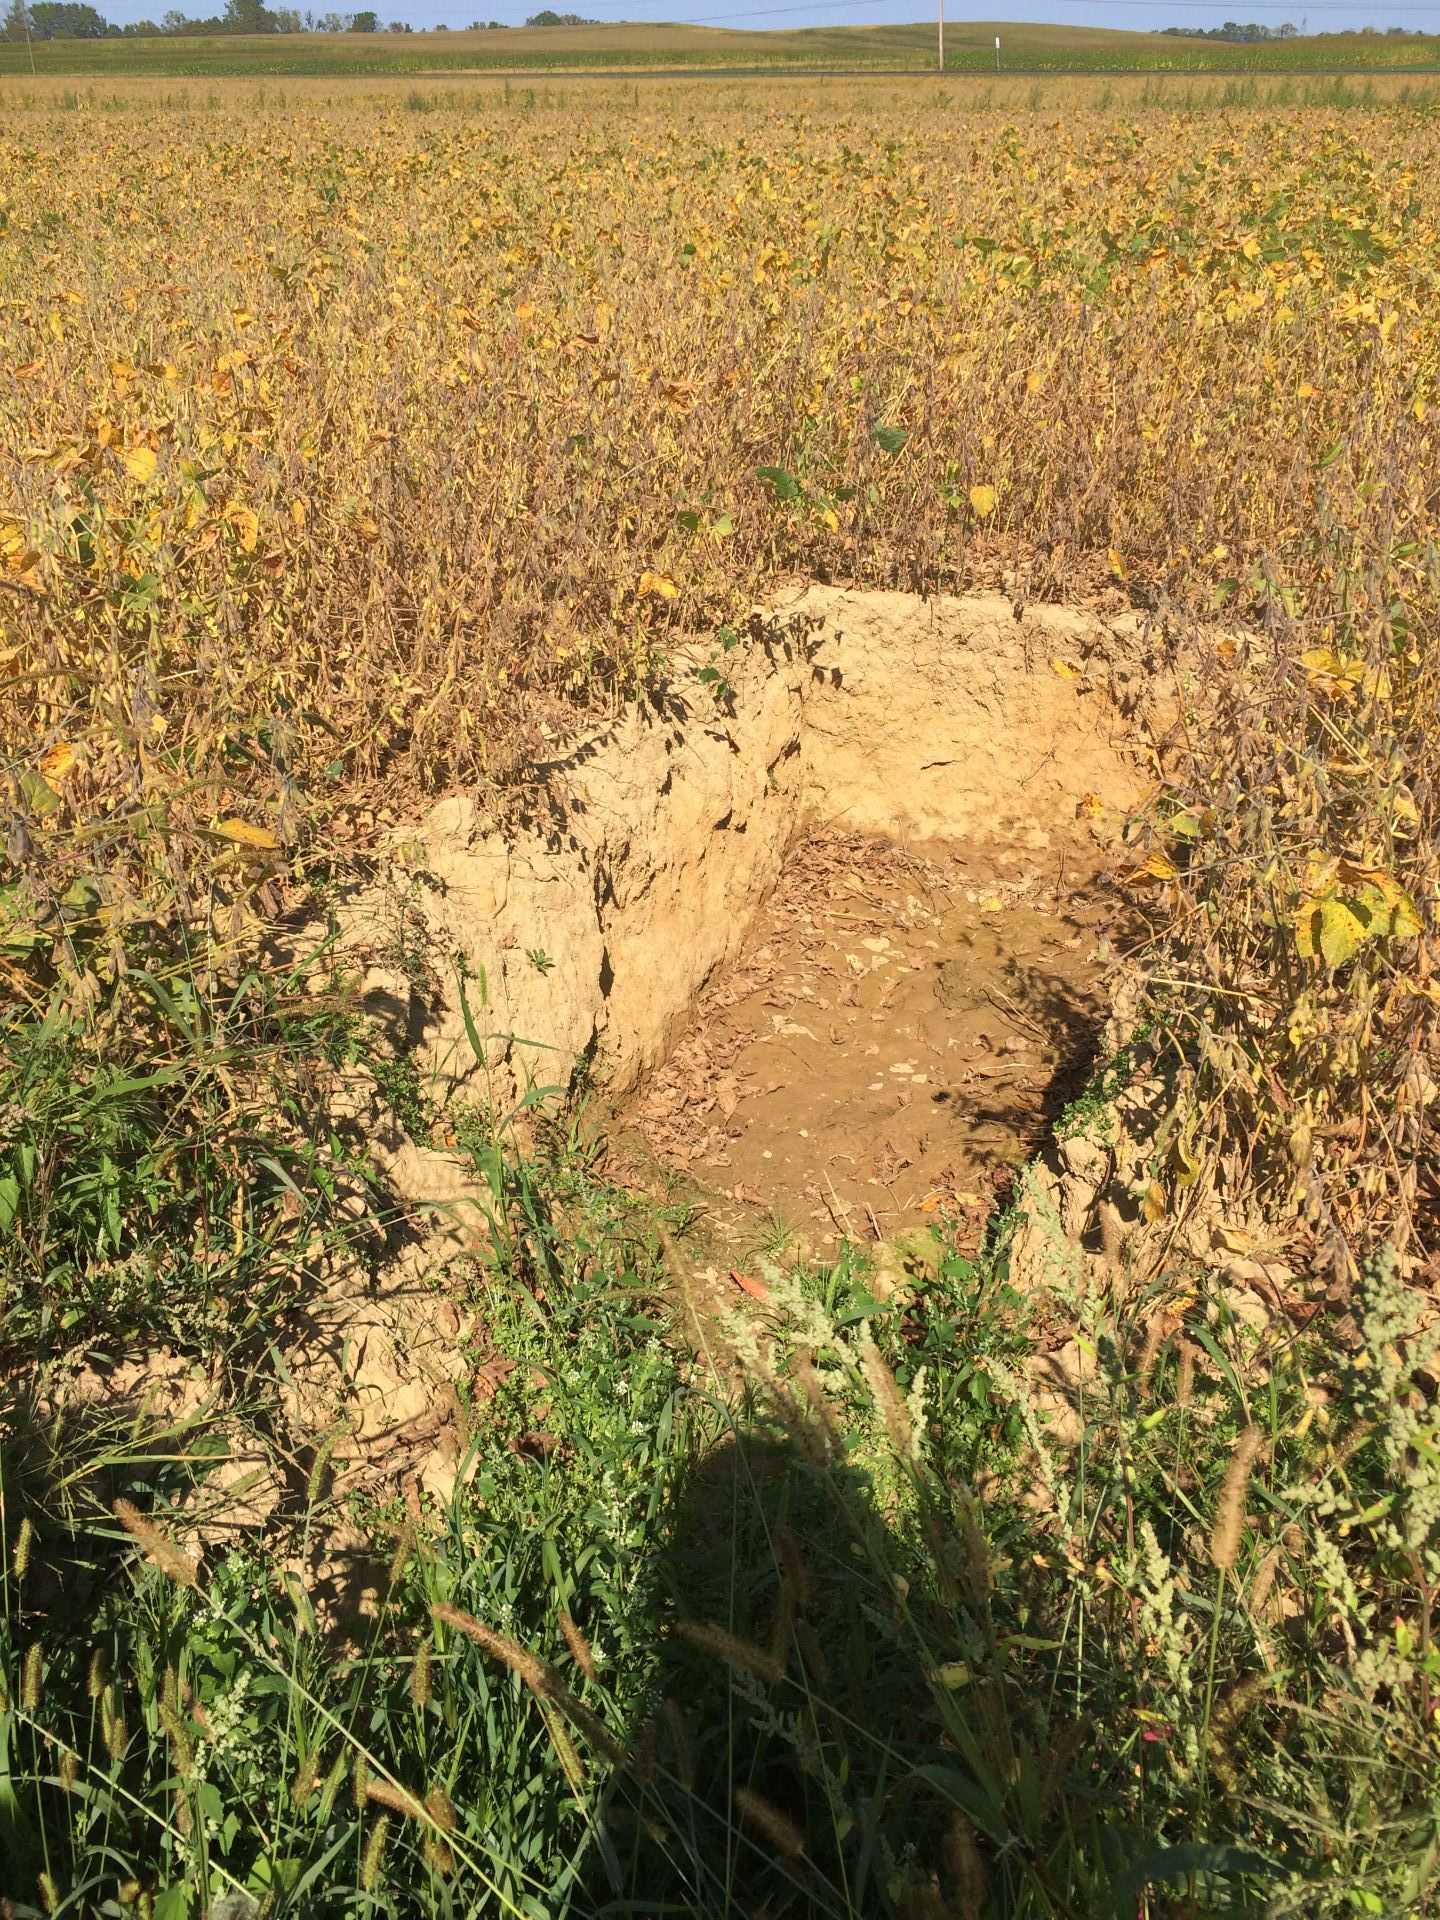 Chic Location Without A Perched Water Perched Water Table At Rock Springs Agricultural Research Center Perched Water Table Problems Perched Water Table Artesian Well houzz-03 Perched Water Table